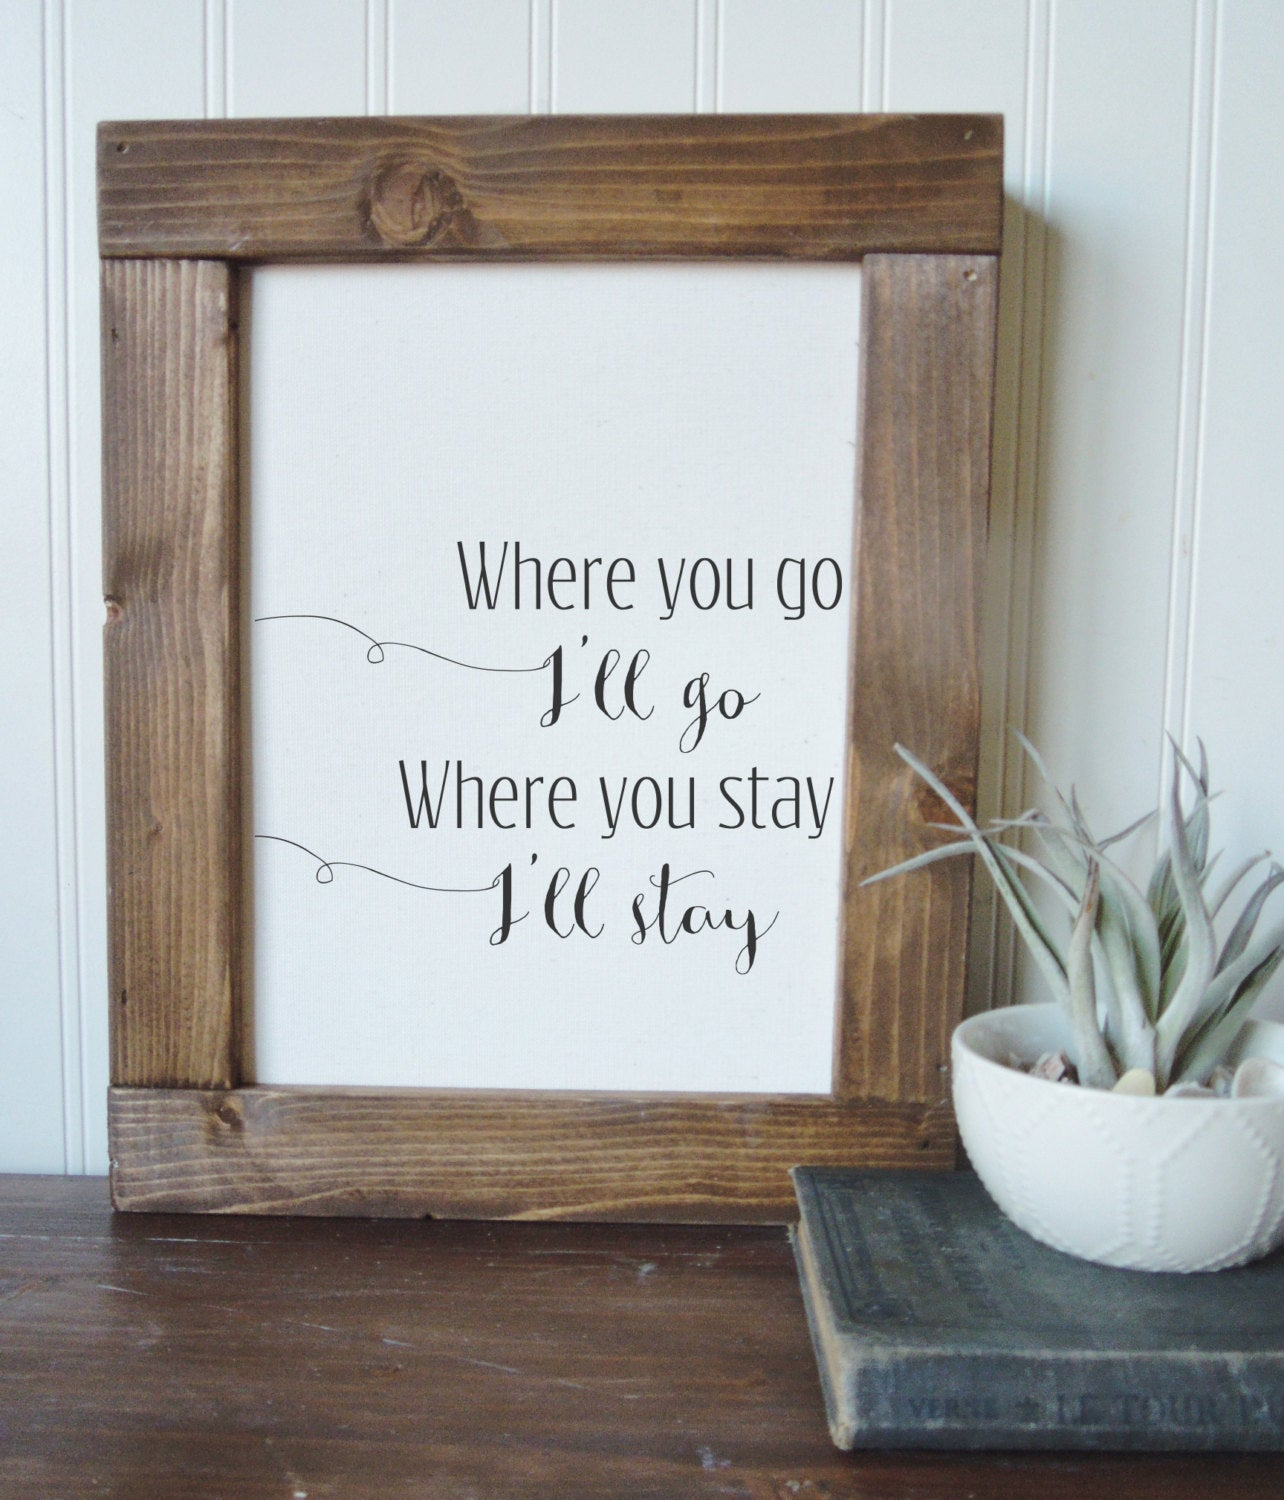 Where you go, I'll go, where you stay, I'll stay/ruth 1:16/wall art/canvas print/canvas wall art